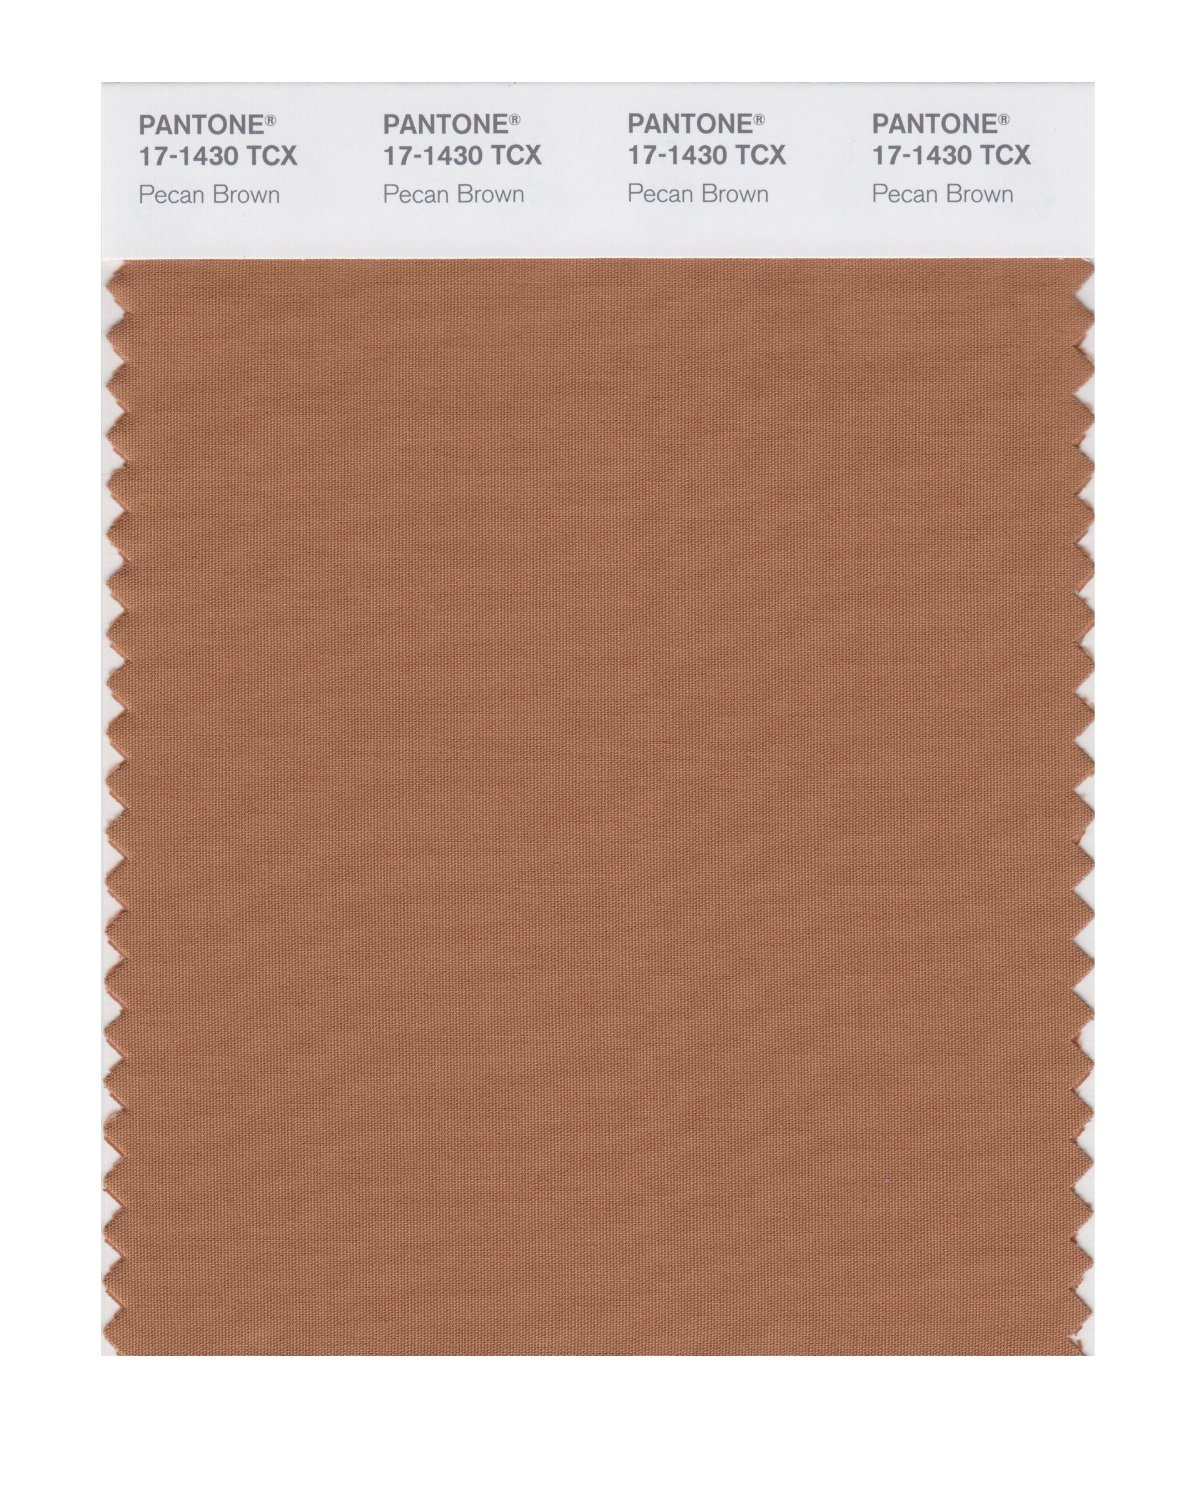 Pantone Smart Swatch 17-1430 Pecan Brown